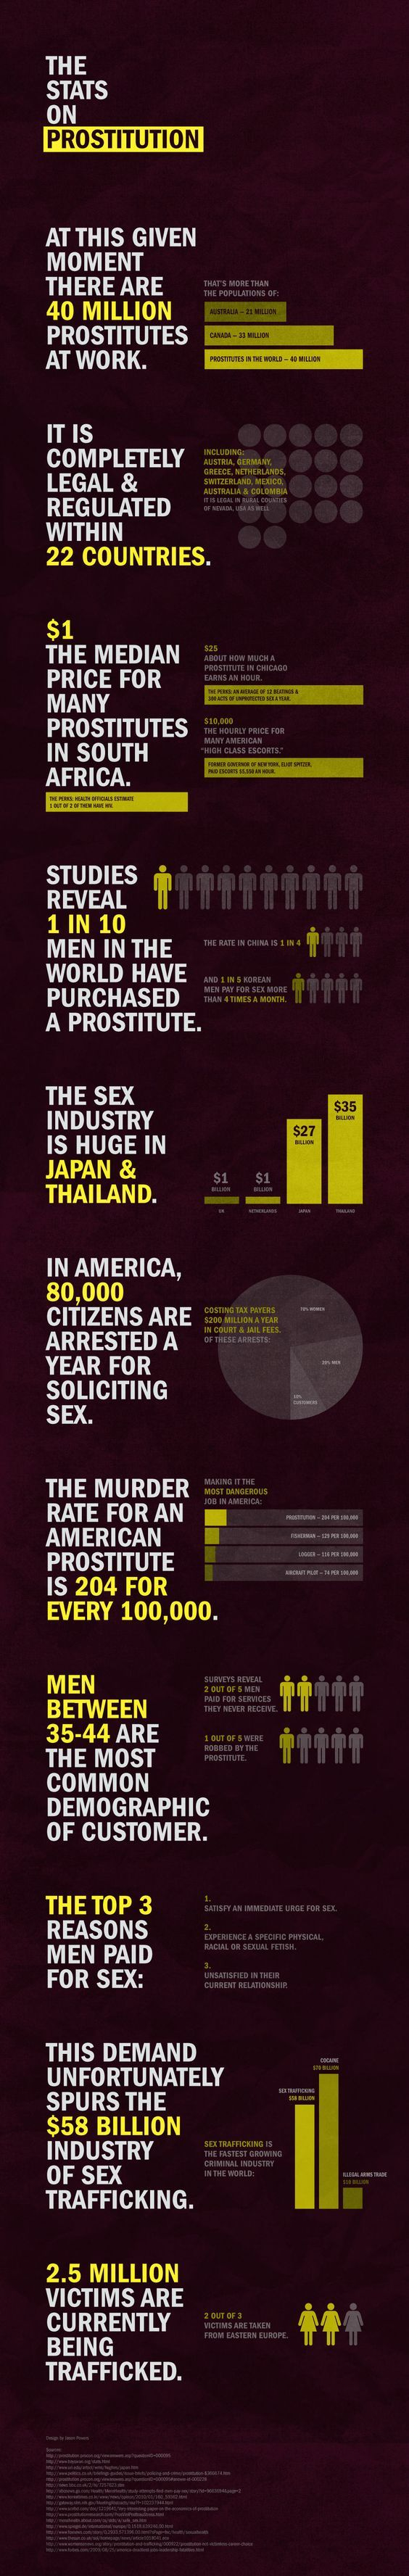 statistics on prostitution Take a look at these prostitution statistics and understand the connection between prostitution and sex trafficking.